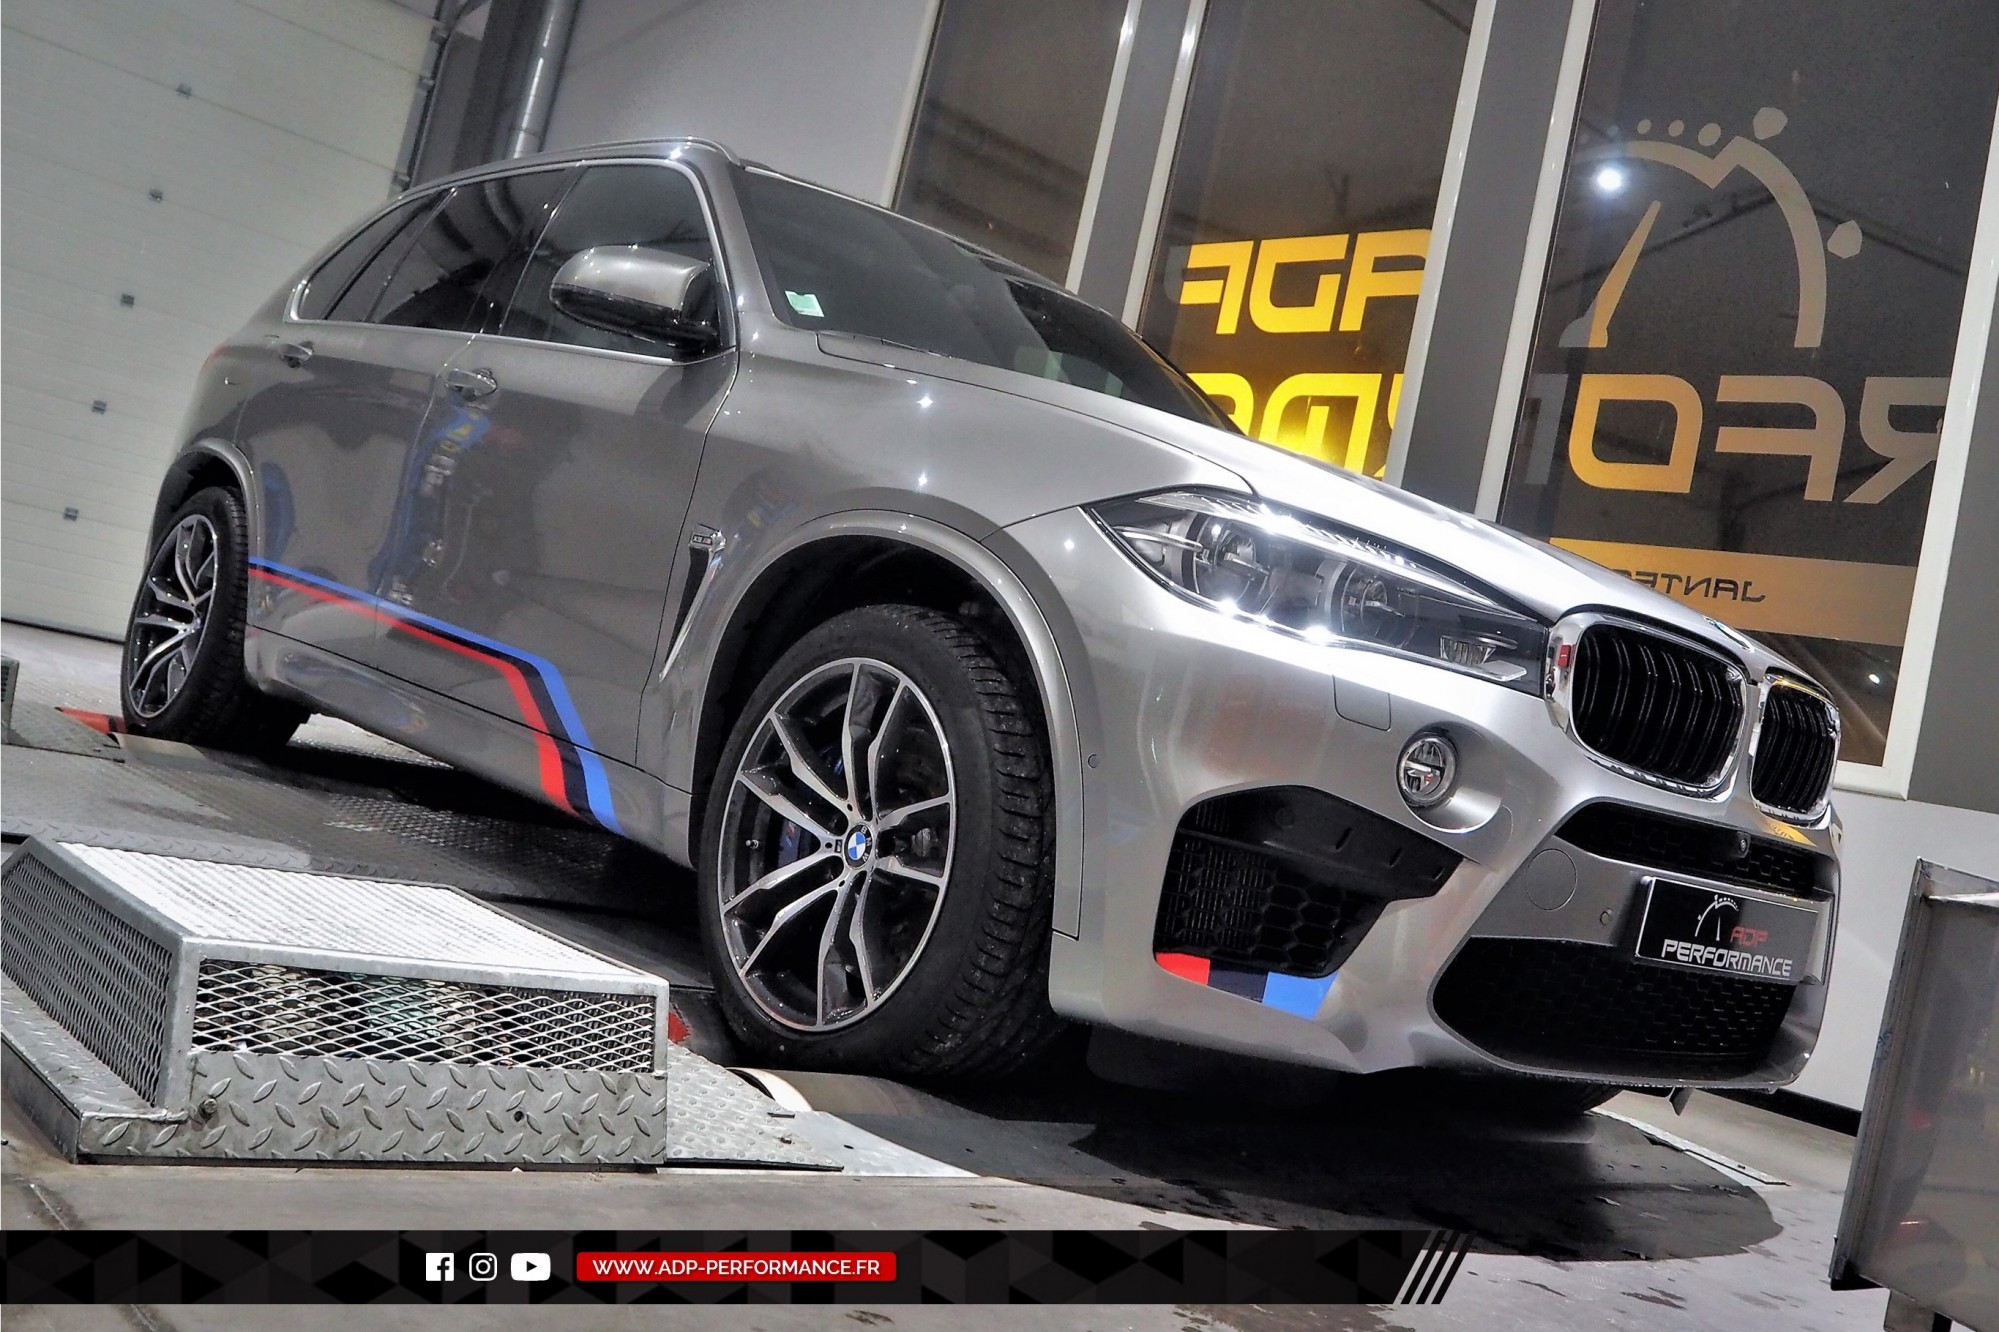 Reprogrammation moteur - BMW X5 M (F85) 4.4 V8 Bi-Turbo 575cv - ADP Performance